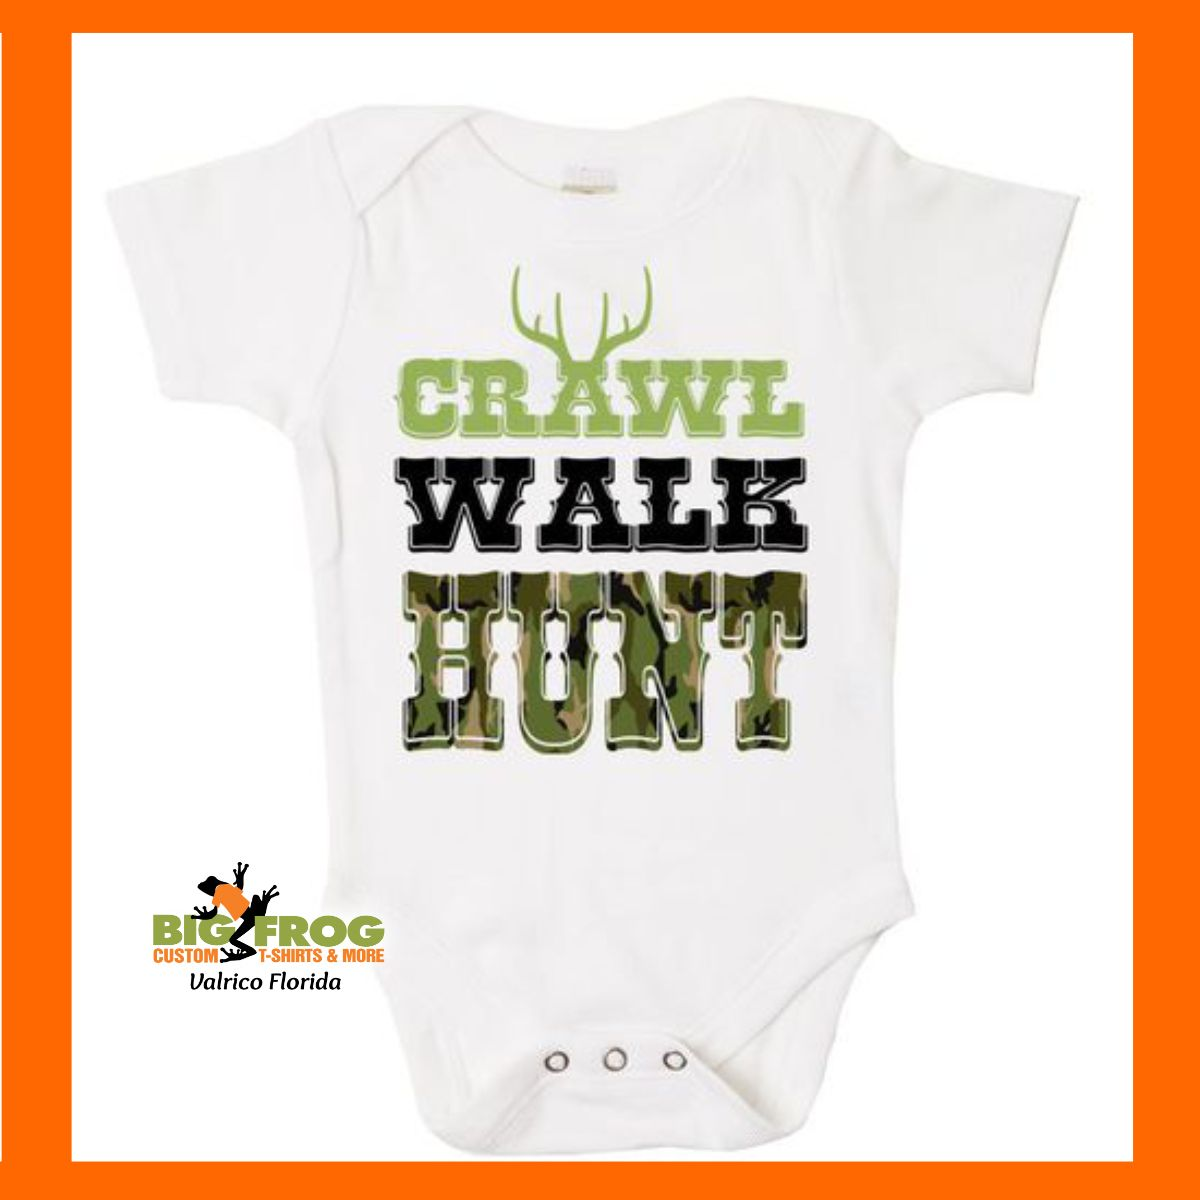 87a224fe6 Crawl Walk Hunt onesie, get a customized one for your special little hunter  at #BigFrog of #Valrico #MyBigFrogLife